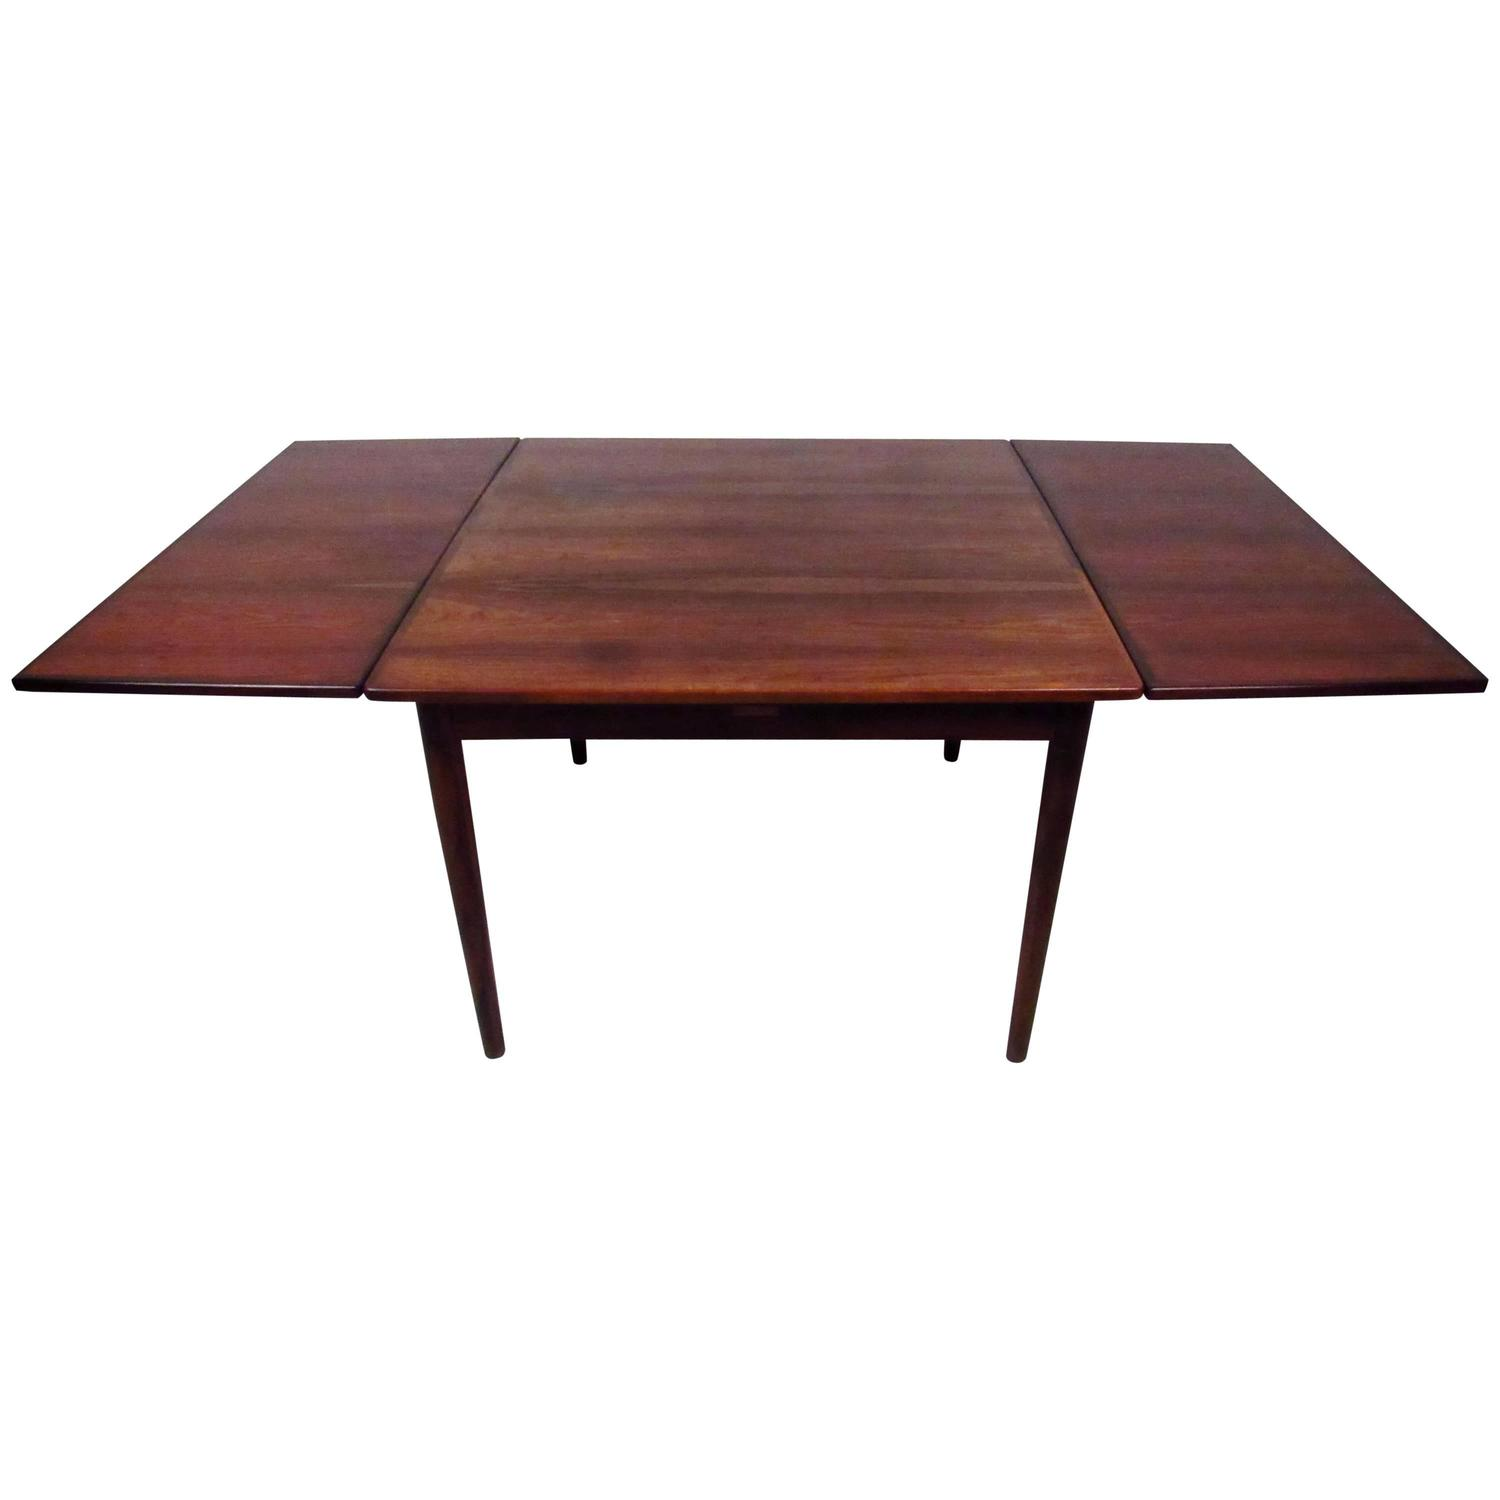 Midcentury Danish Rosewood Dining Table For Sale At 1stdibs